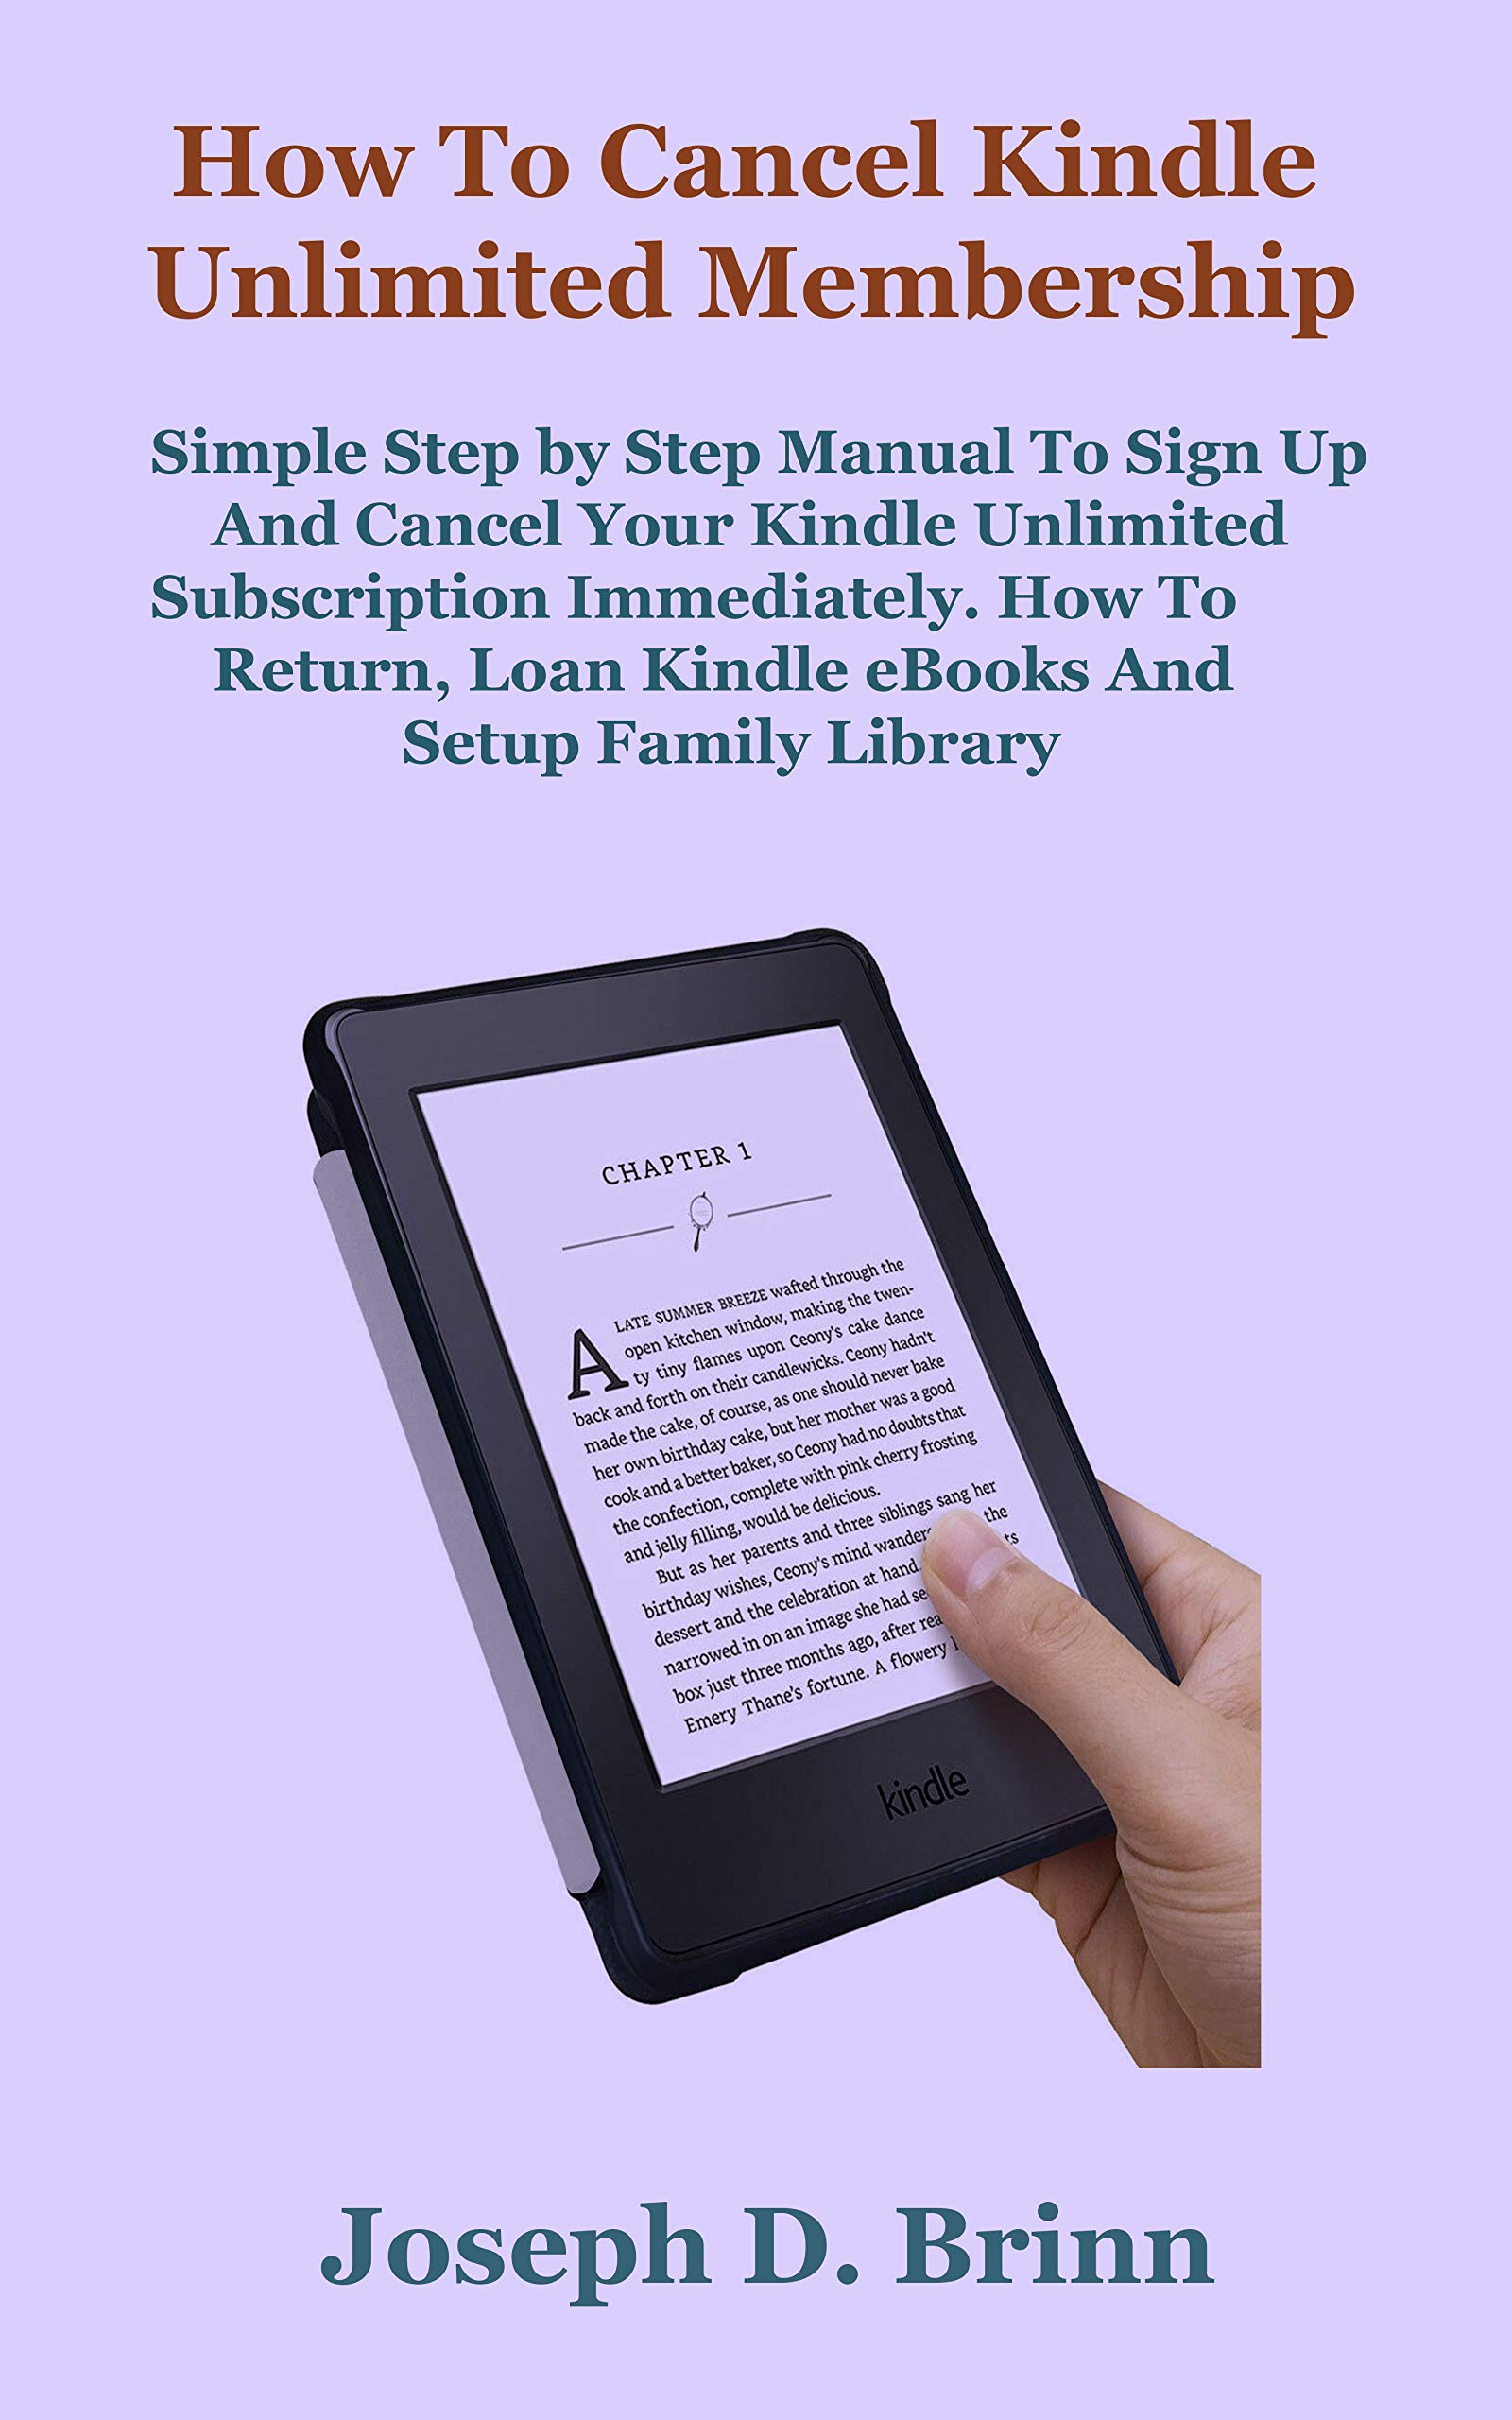 How To Cancel Kindle Unlimited Membership: Simple Step by Step Manual To Sign Up And Cancel Your Kindle Unlimited Subscription Immediately. How To Return, Loan Kindle eBooks And Setup Family Library